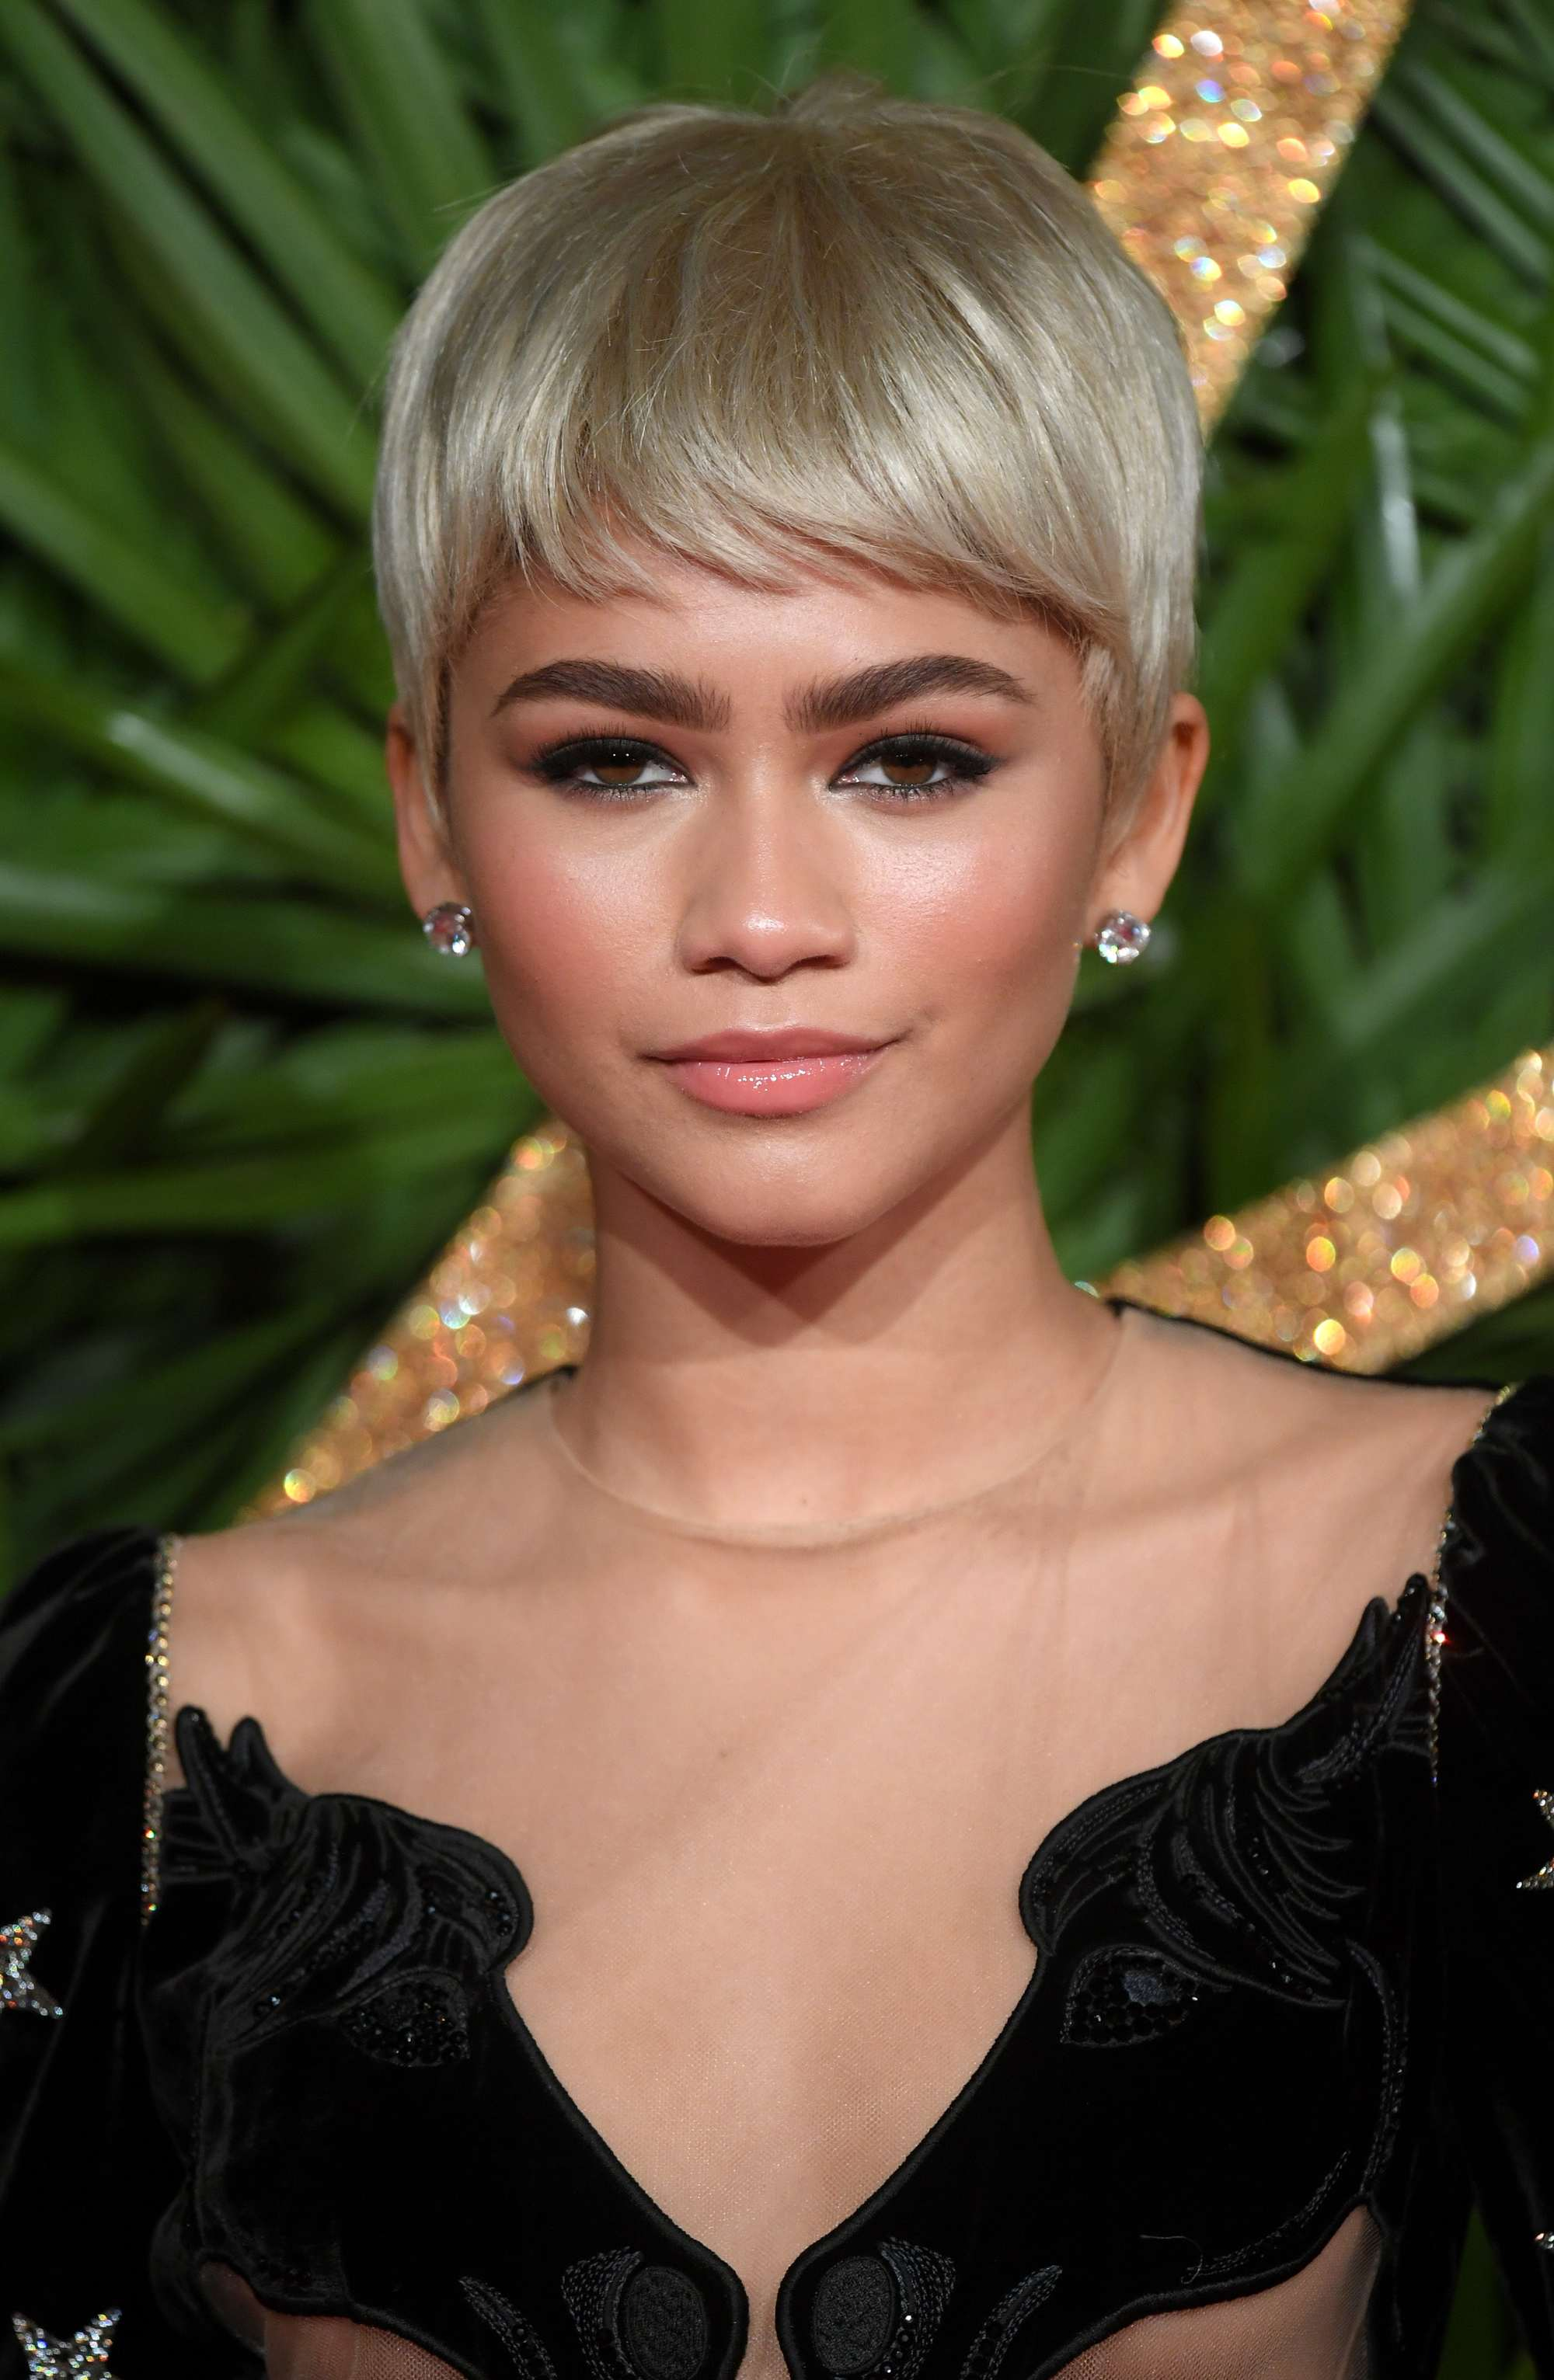 american actress and singer zendaya at the british fashion awards with a platinum blonde pixie wig